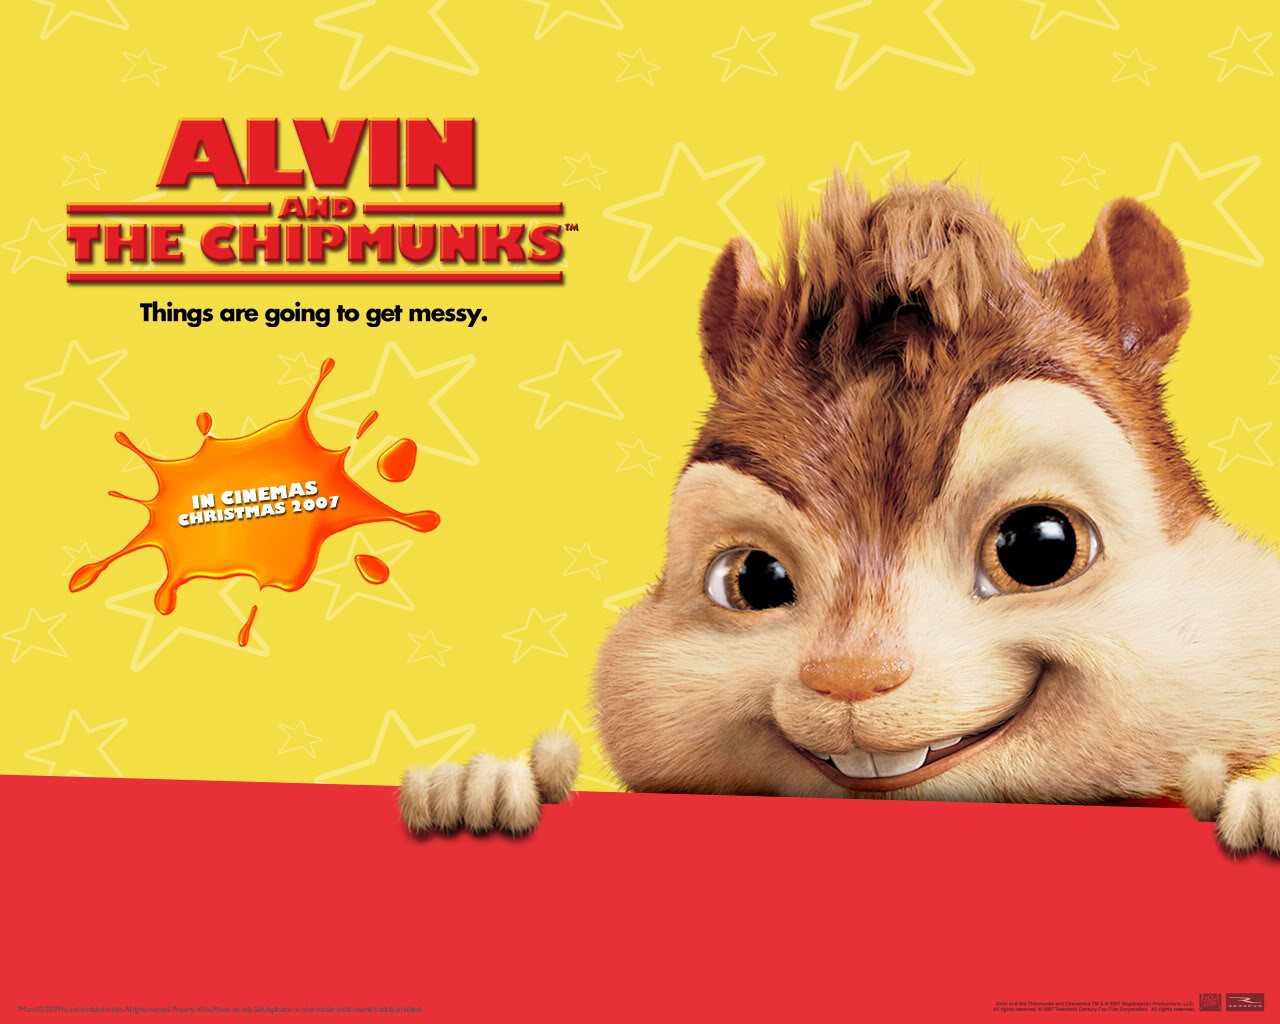 Alvin The Chipmunks Wallpaper Alvin And The Chipmunks